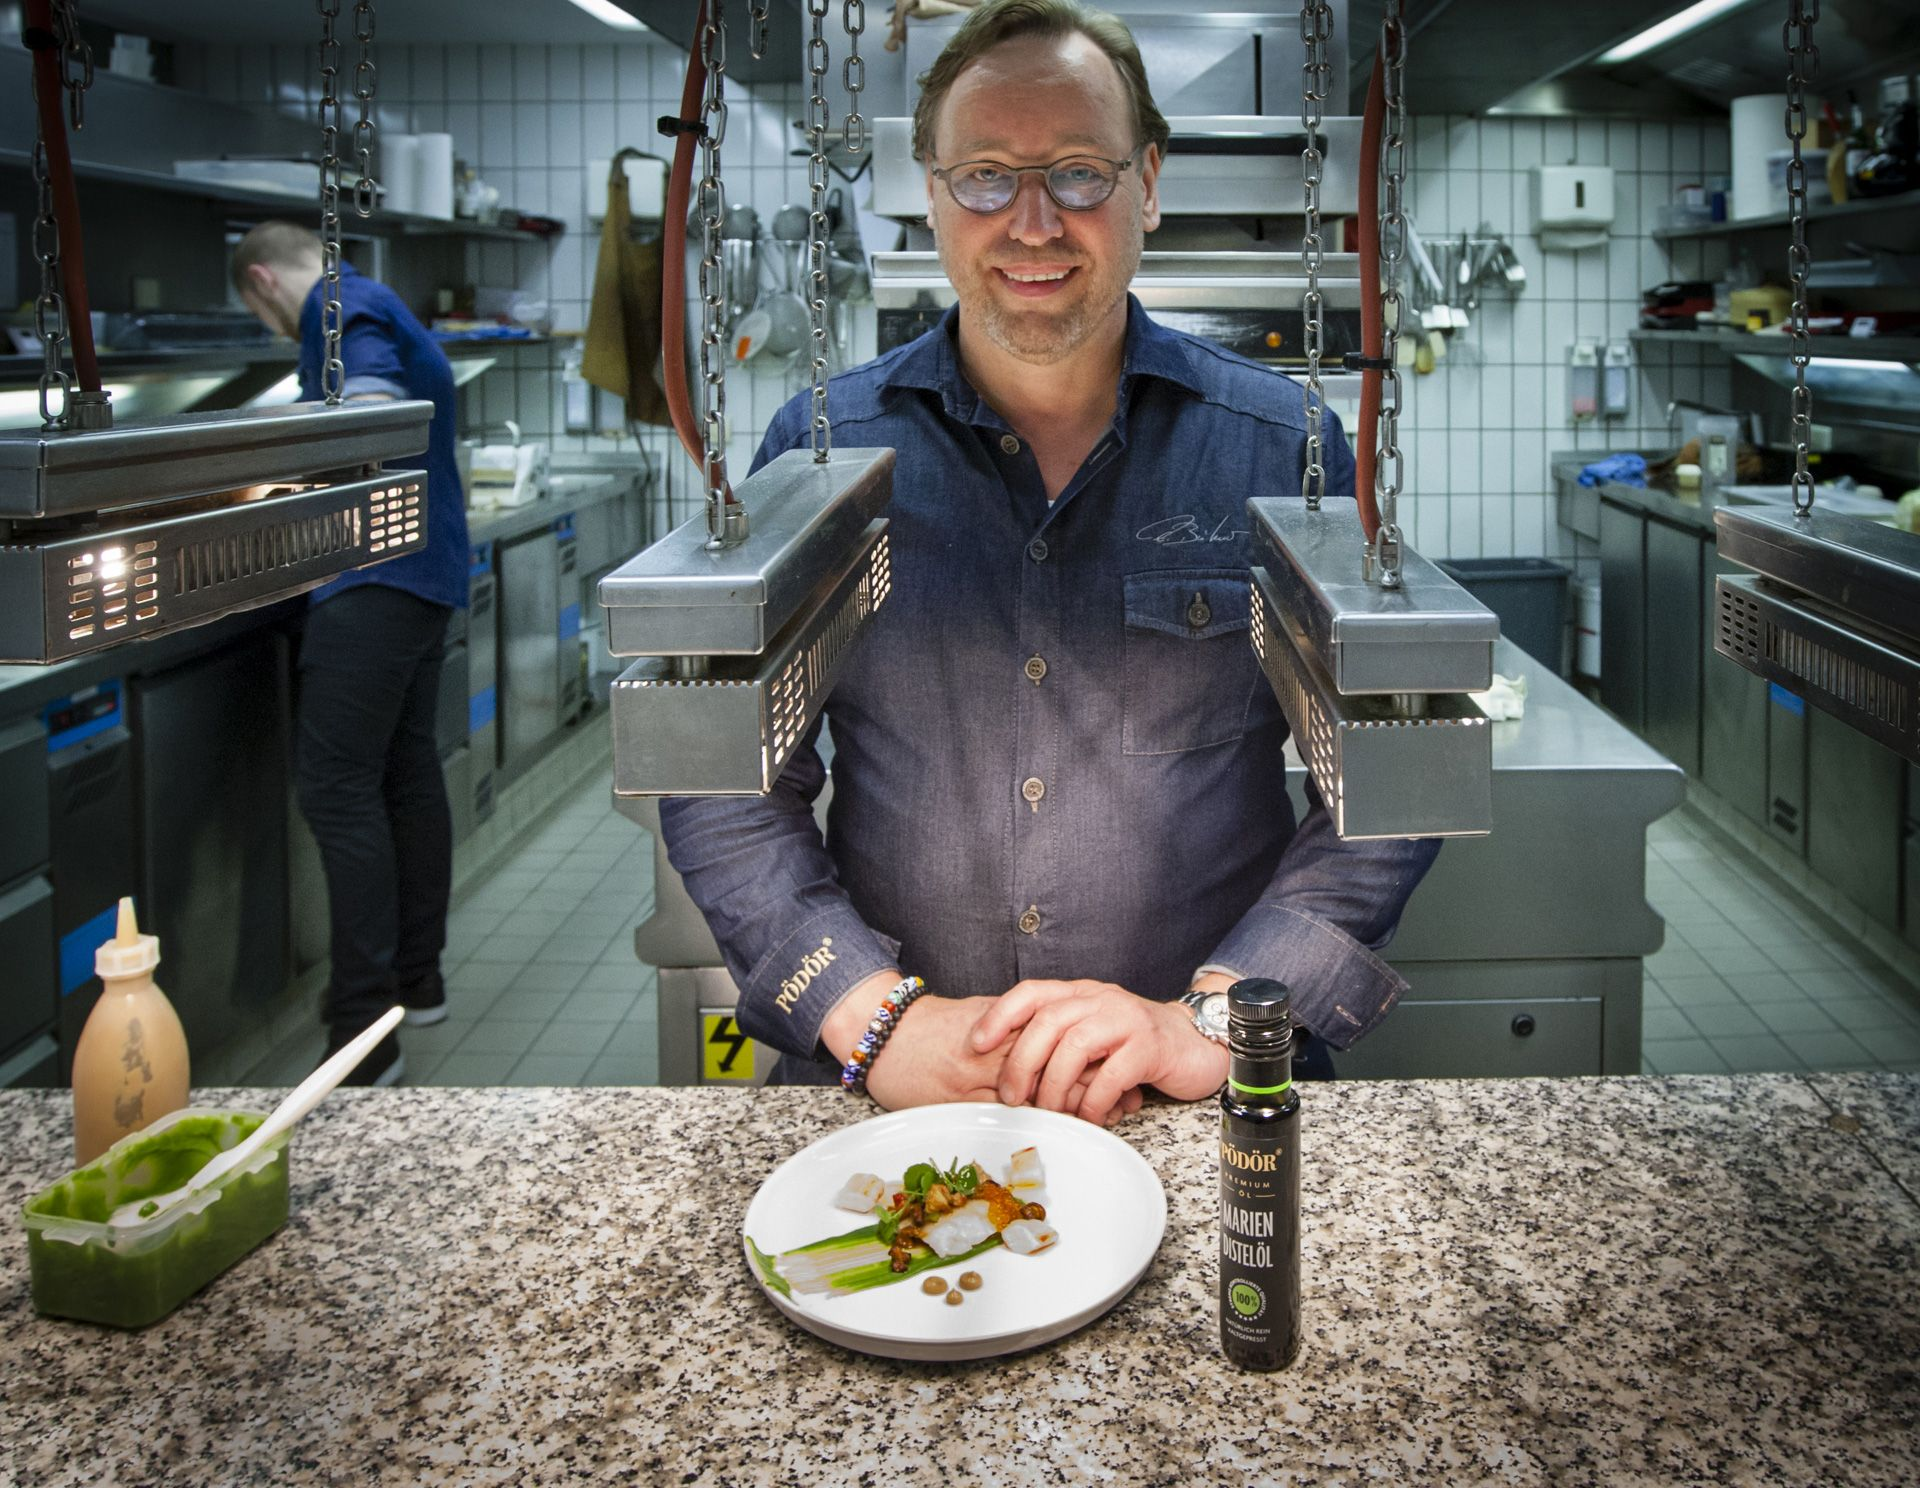 3-star chef and Pödör brand ambassador Thomas Bühner combines the noble fish Saint Pierre with pea puree and chanterelle cream. He refines the fish with a thread of thistle oil as topping. The mild nutty oil harmonizes particularly well with vegetables with a residual sweetness such as peas or carrots.